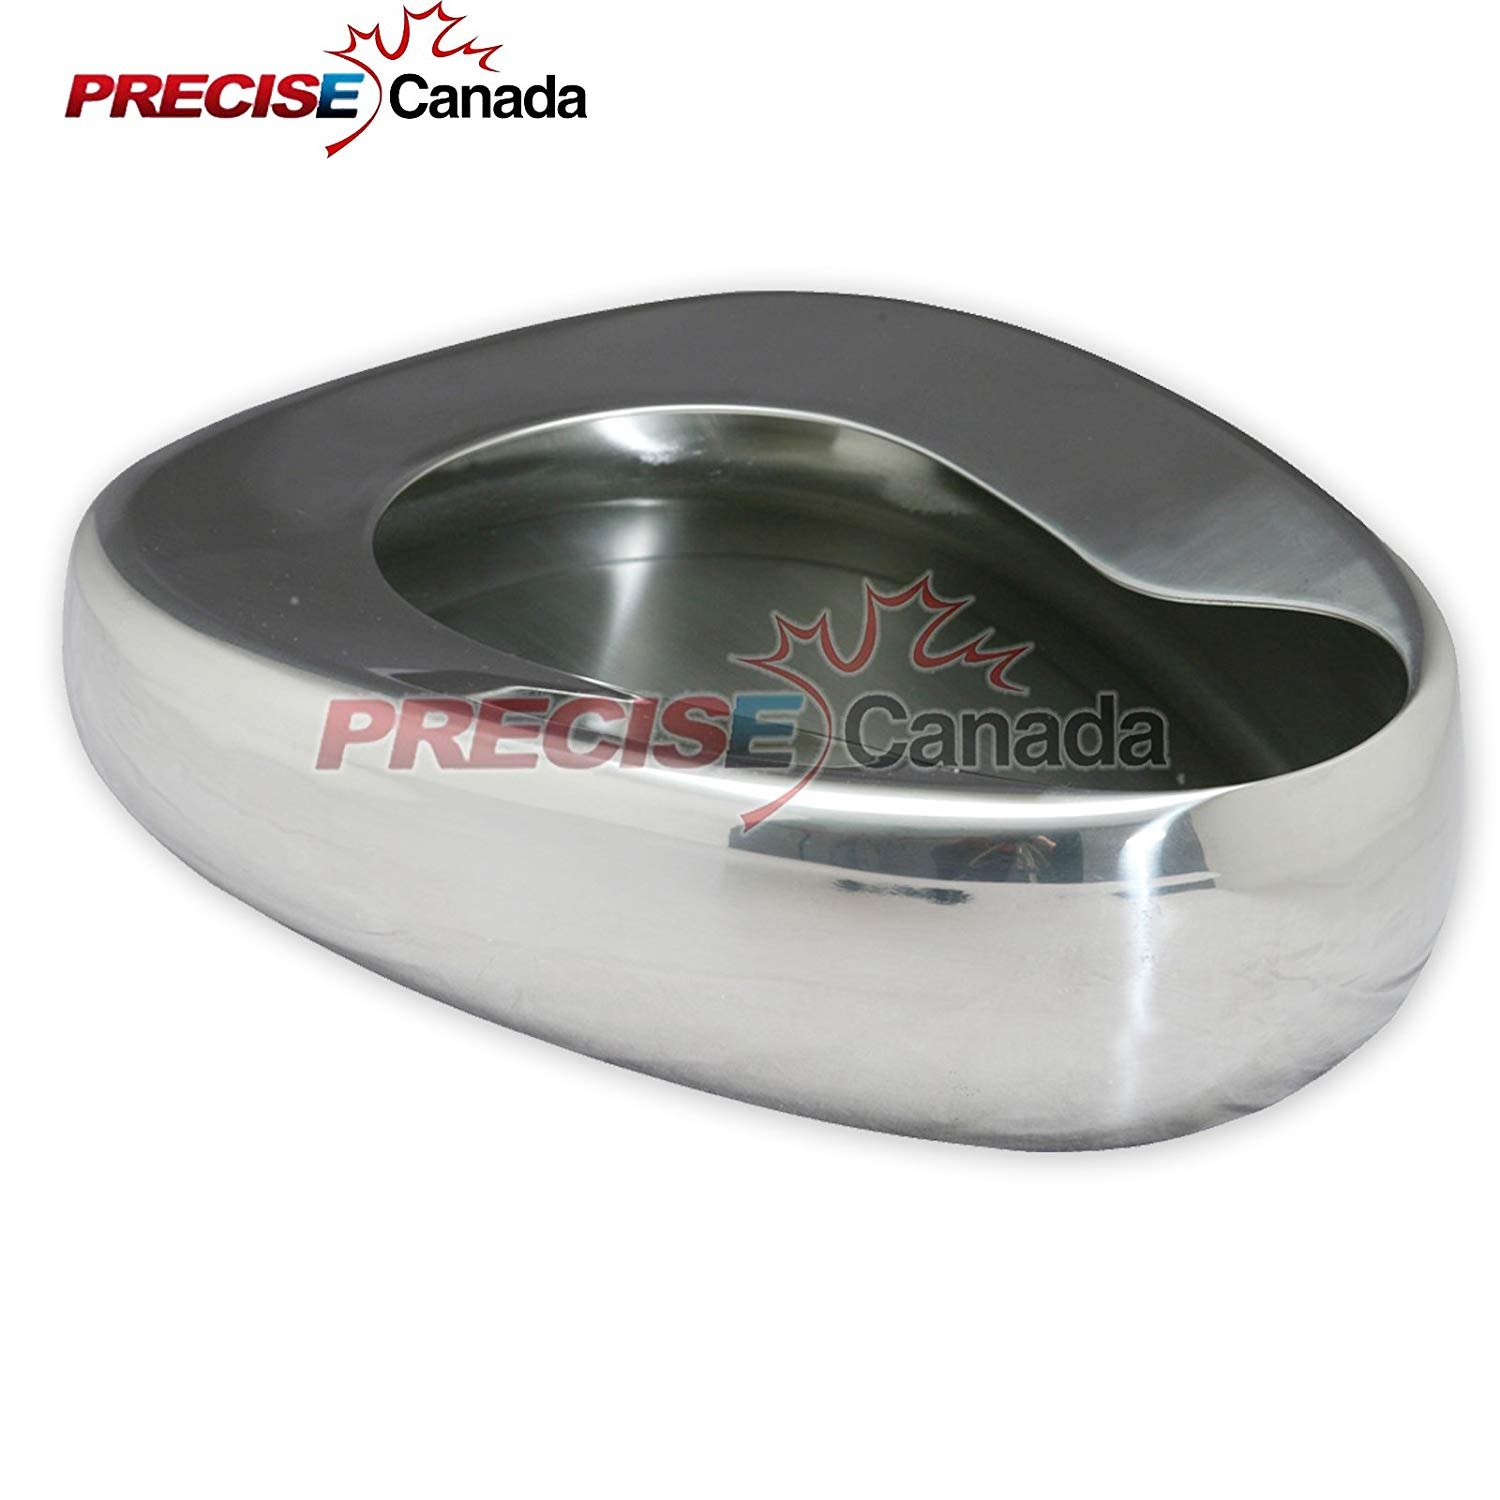 Stainless Steel Bed Pans - Adult: 14'' X 11 3/8'' Quality Bed Pans